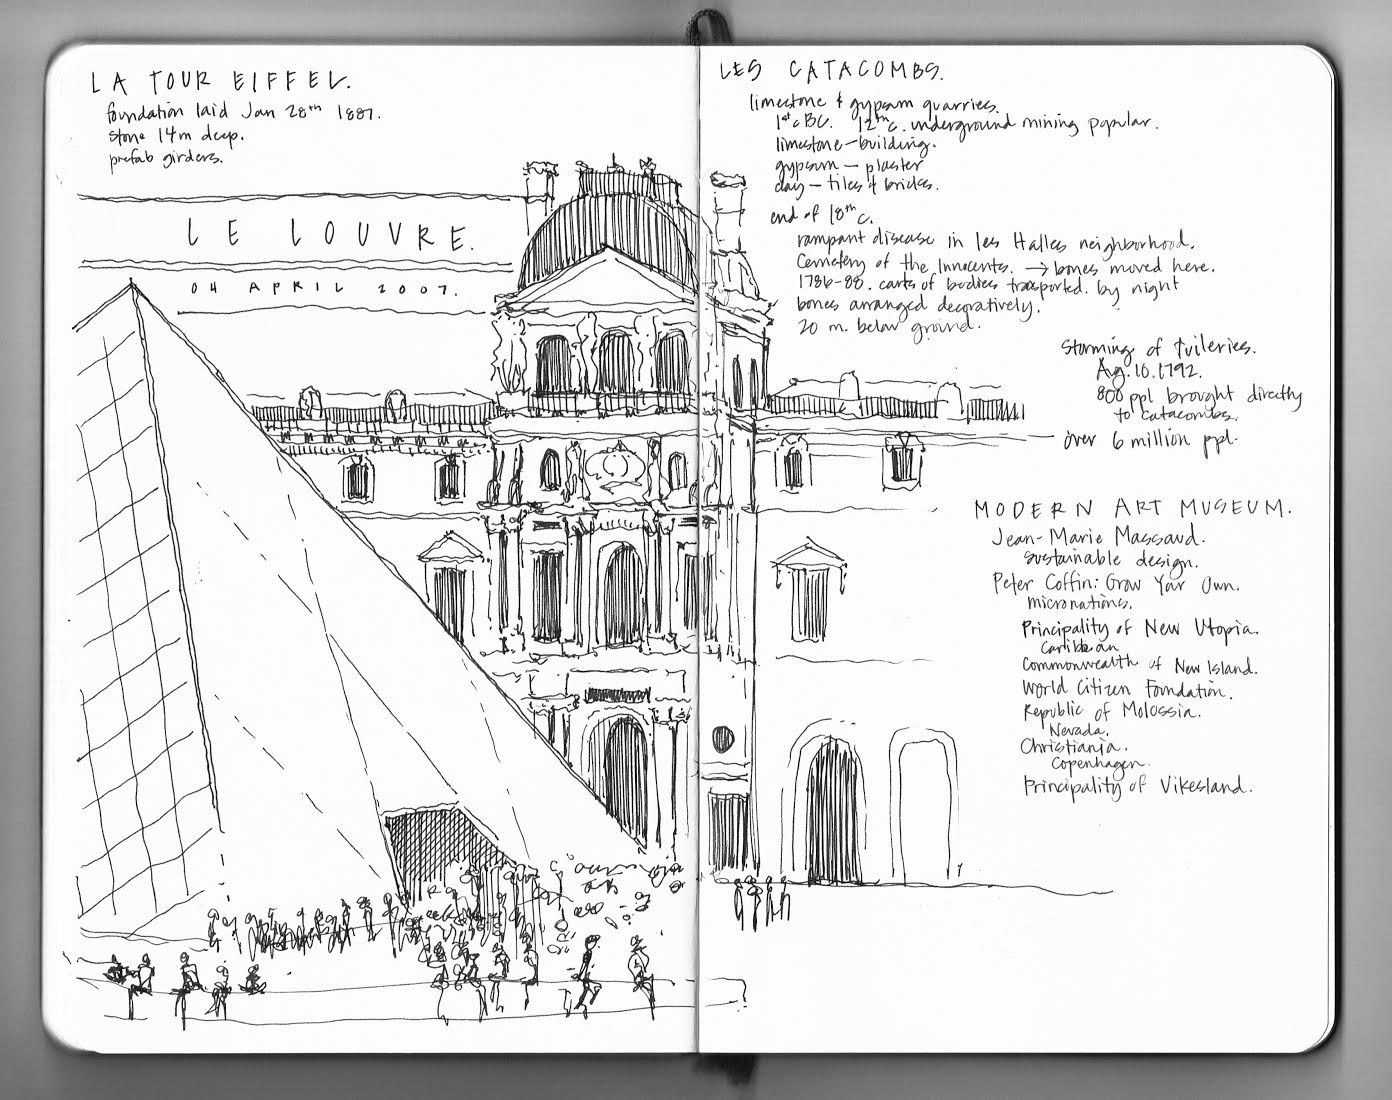 Sketches of the Louvre, art in Paris, travel France, Europe